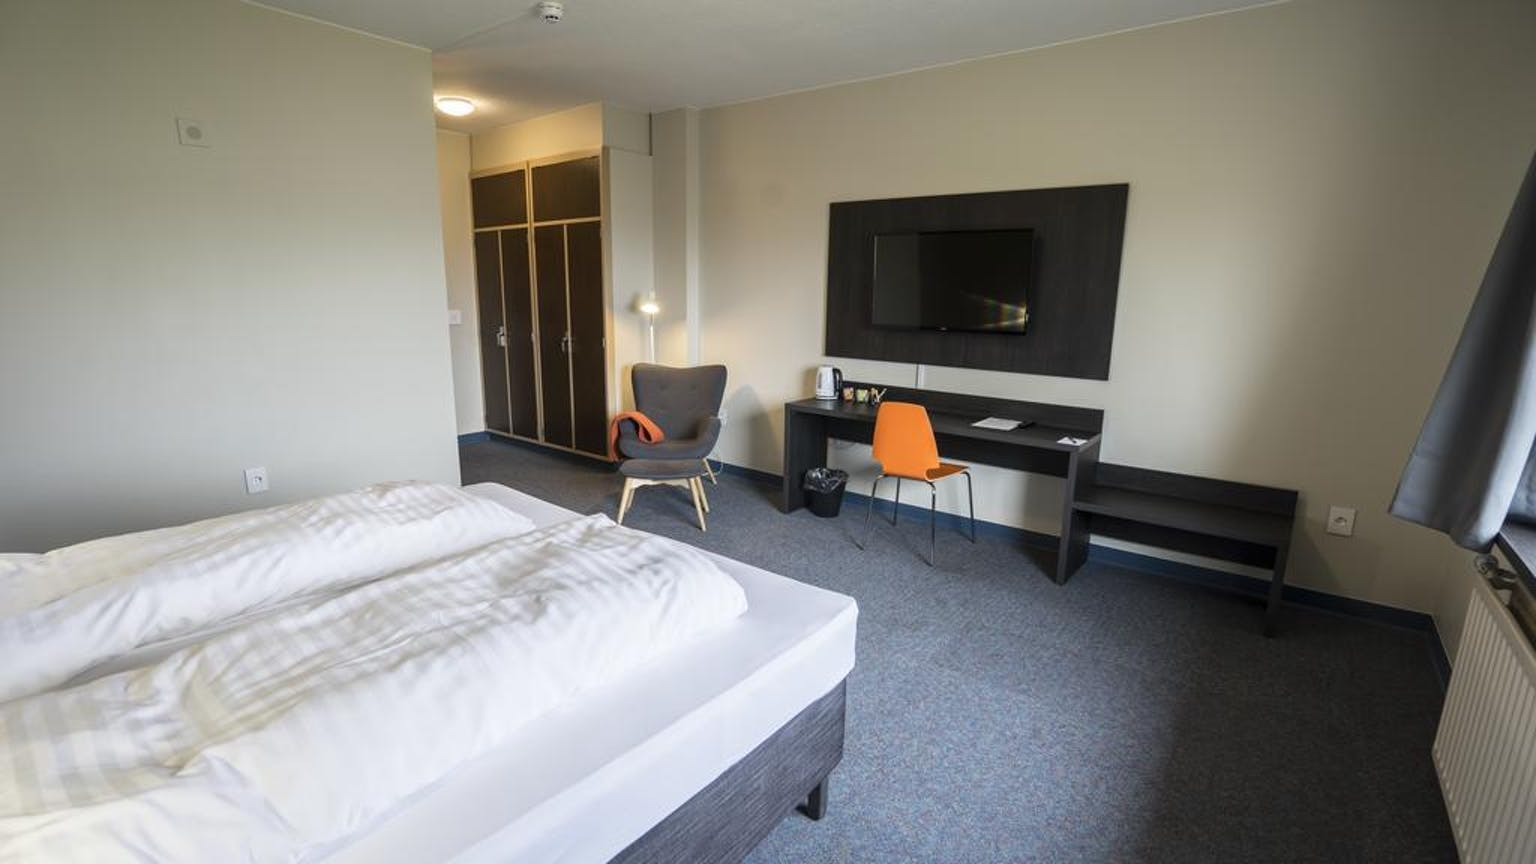 BB Airport Hotel - Room 2